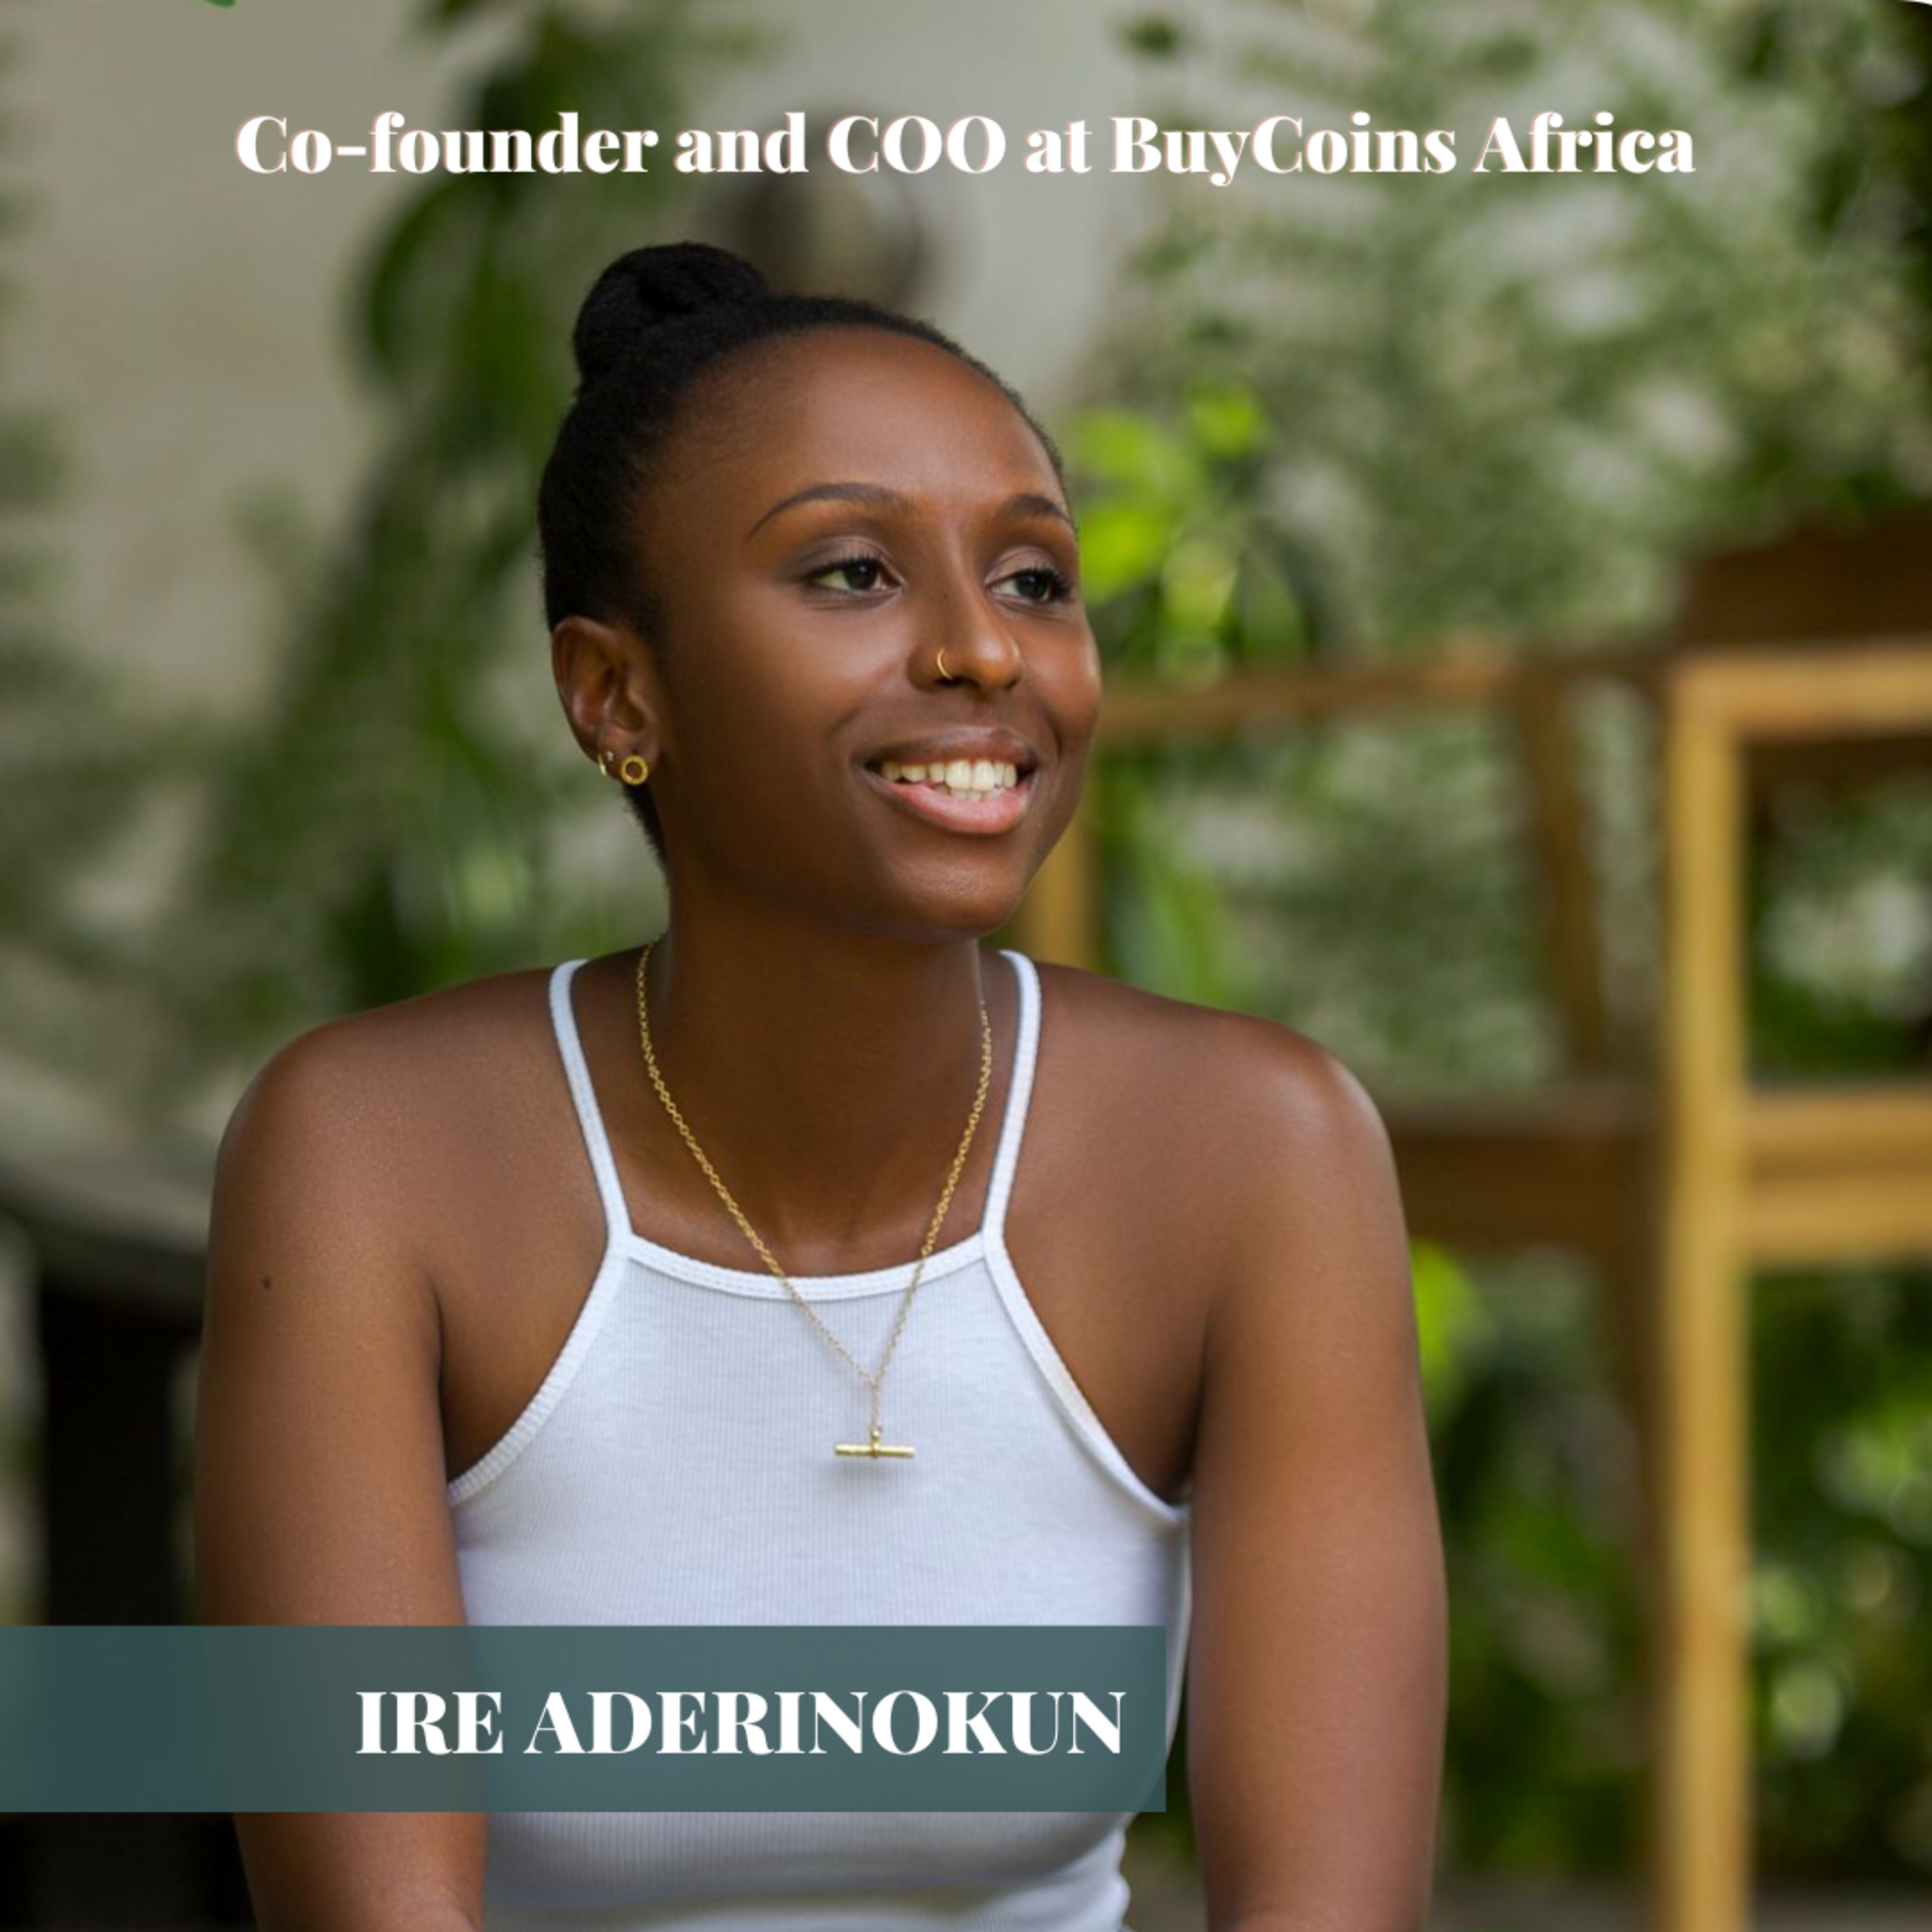 Meet, Ire Aderinokun - Nigeria's first female Google Developer Expert, Cofounder and COO of BuyCoins (YC S18), a cryptocurrency exchange for Africa.